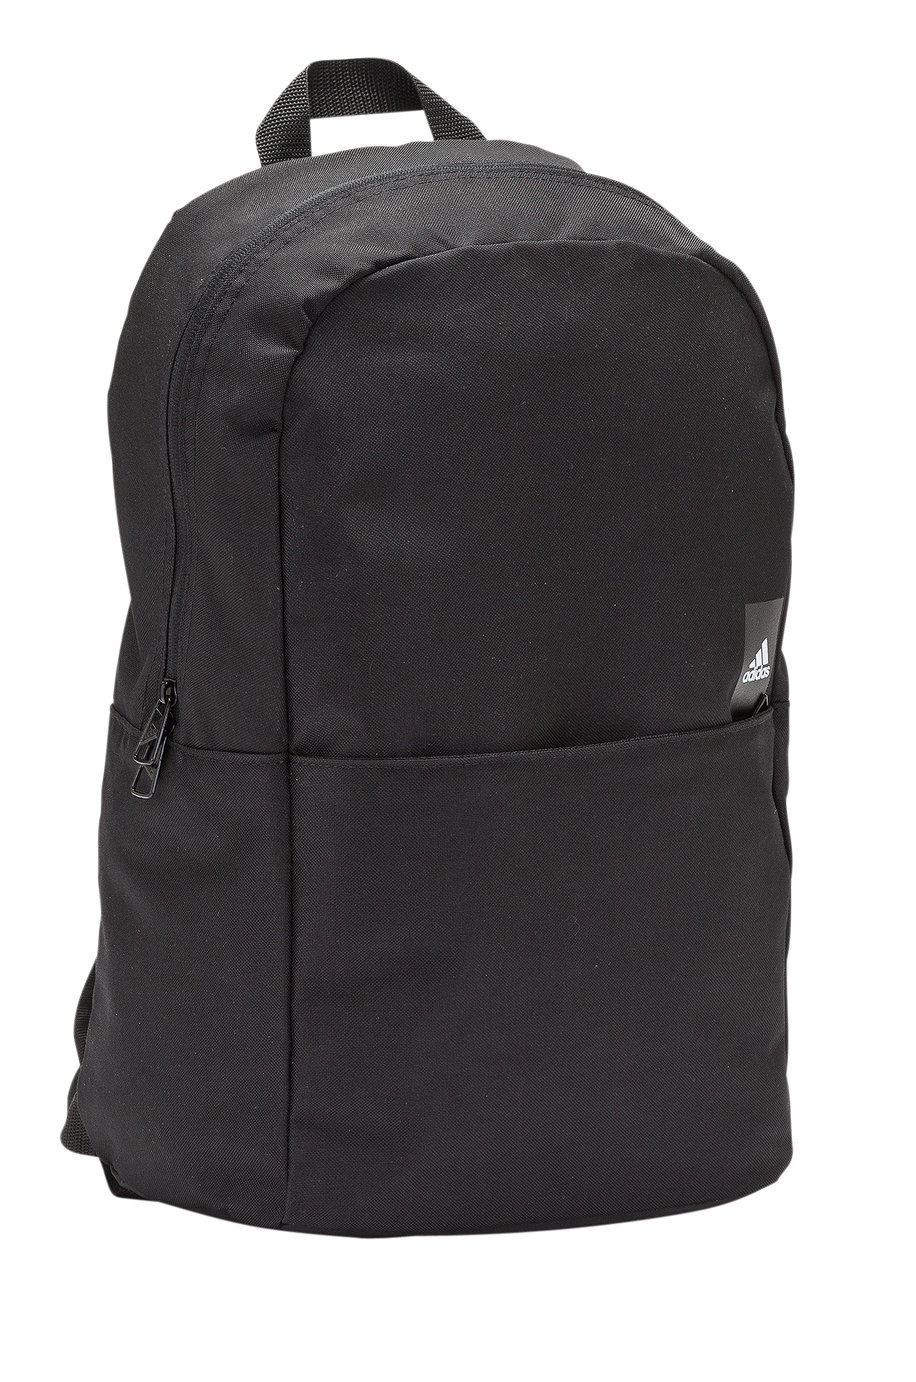 Image of Adidas Classic Medium Backpack - Black